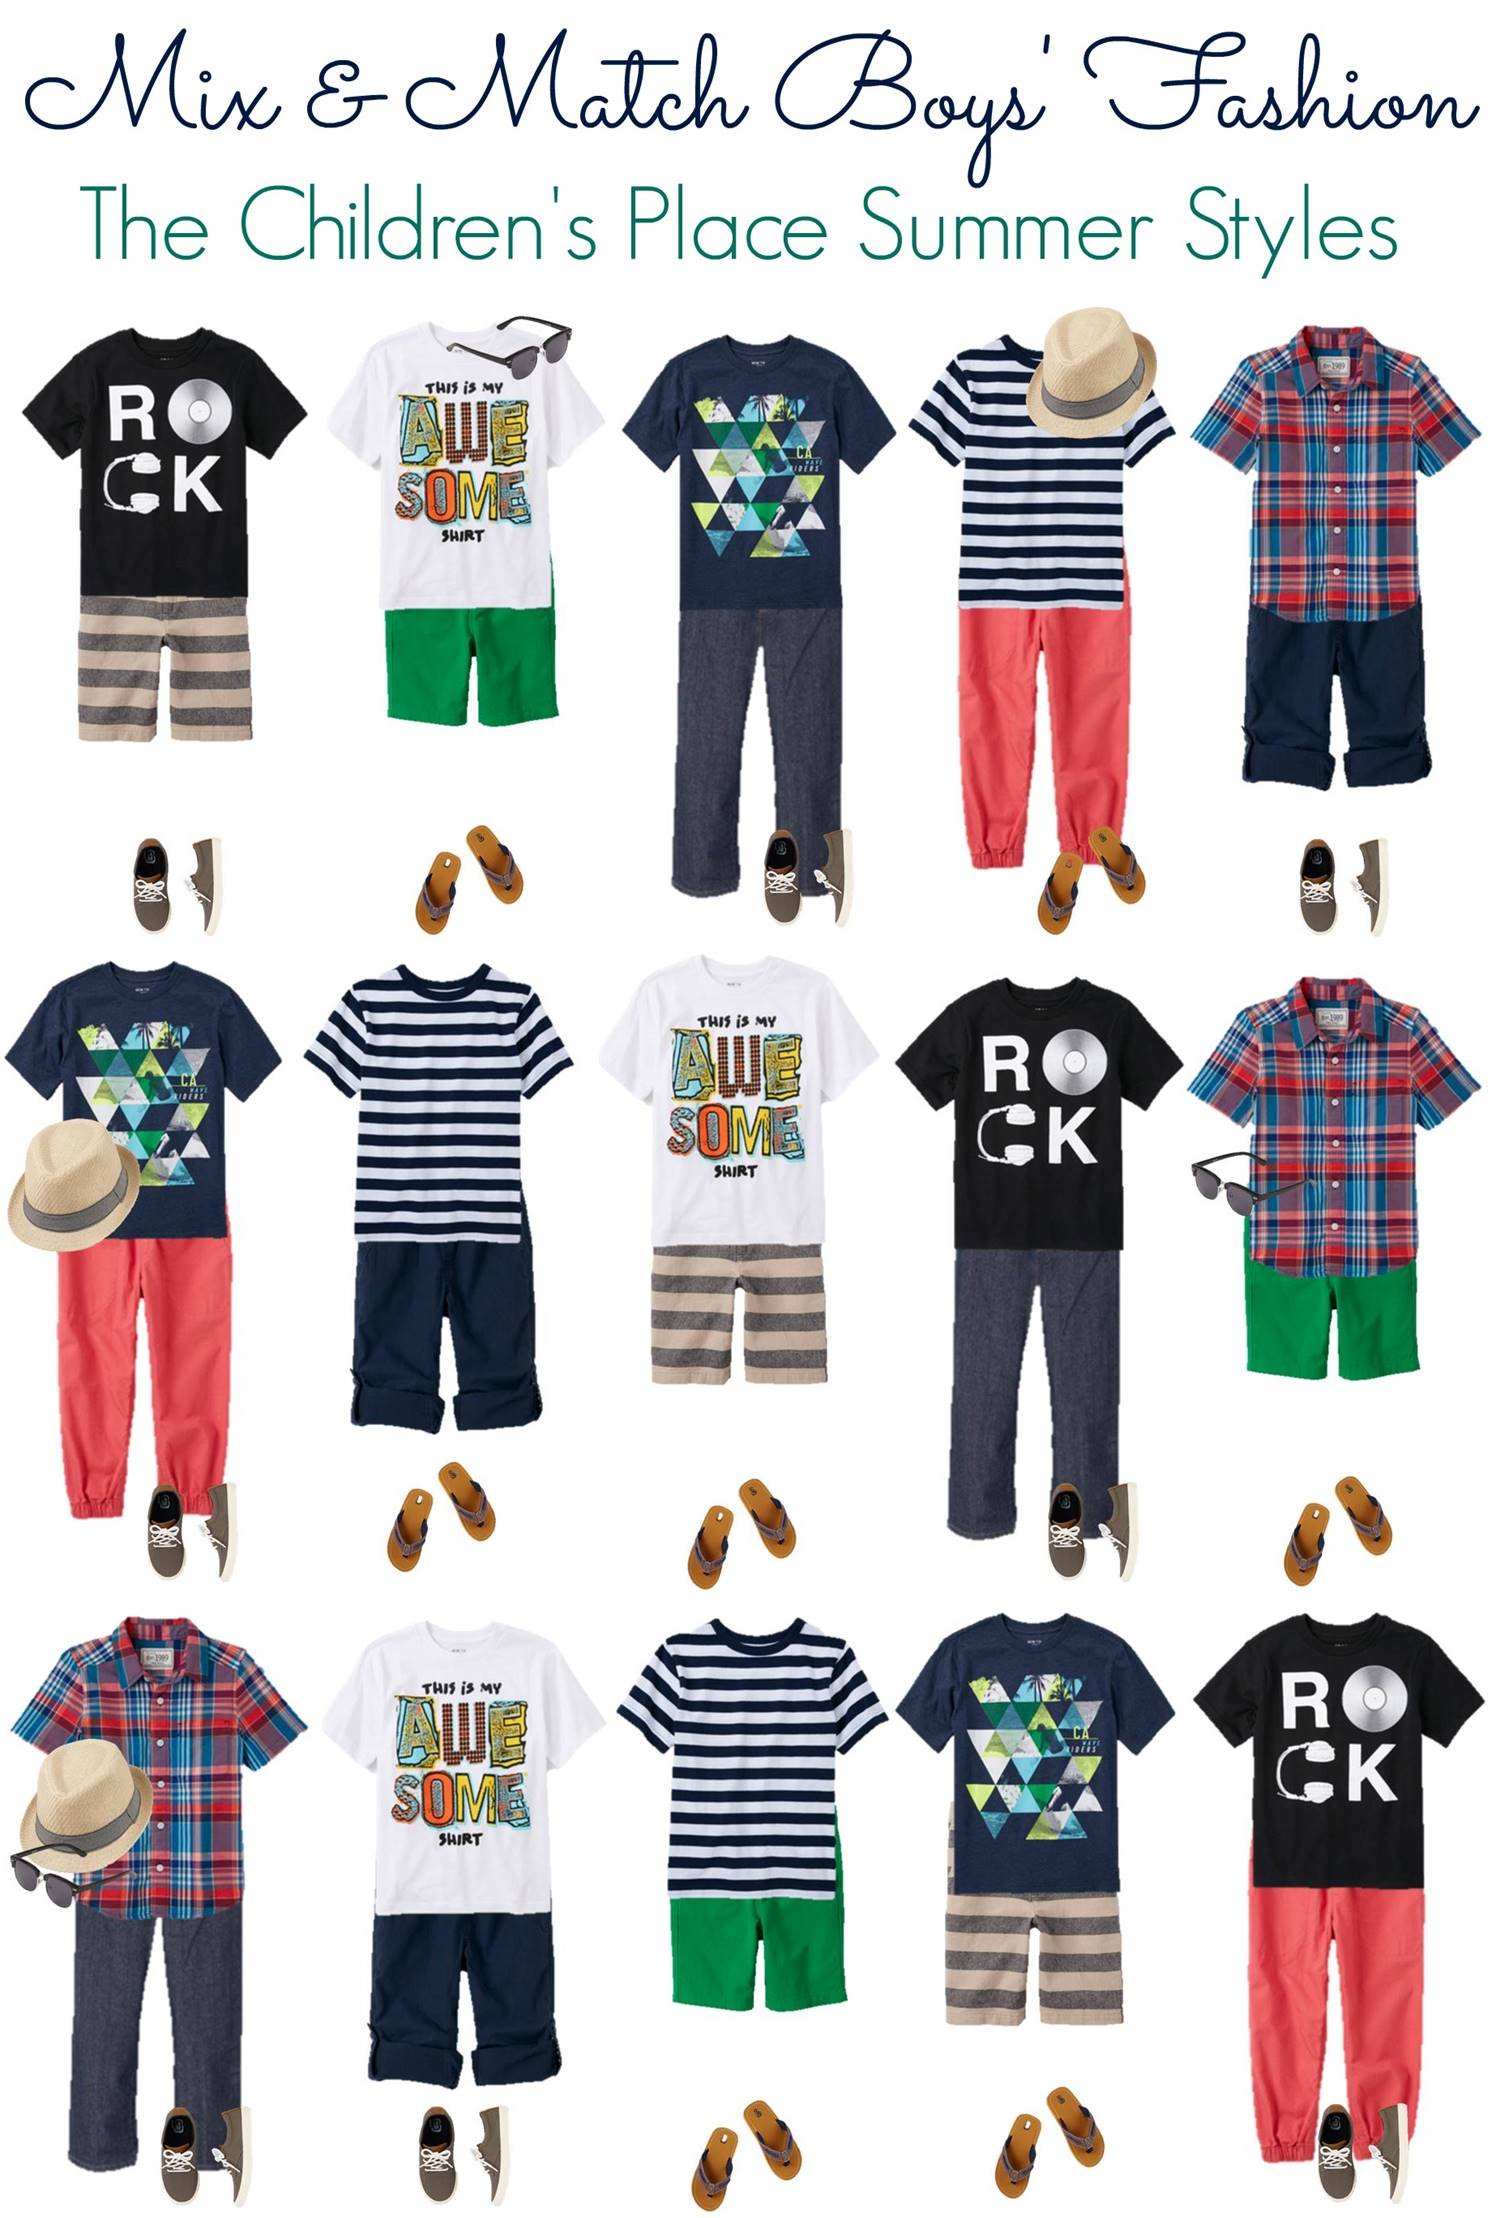 Mix and Match - BOYS Summer Styles from TCP